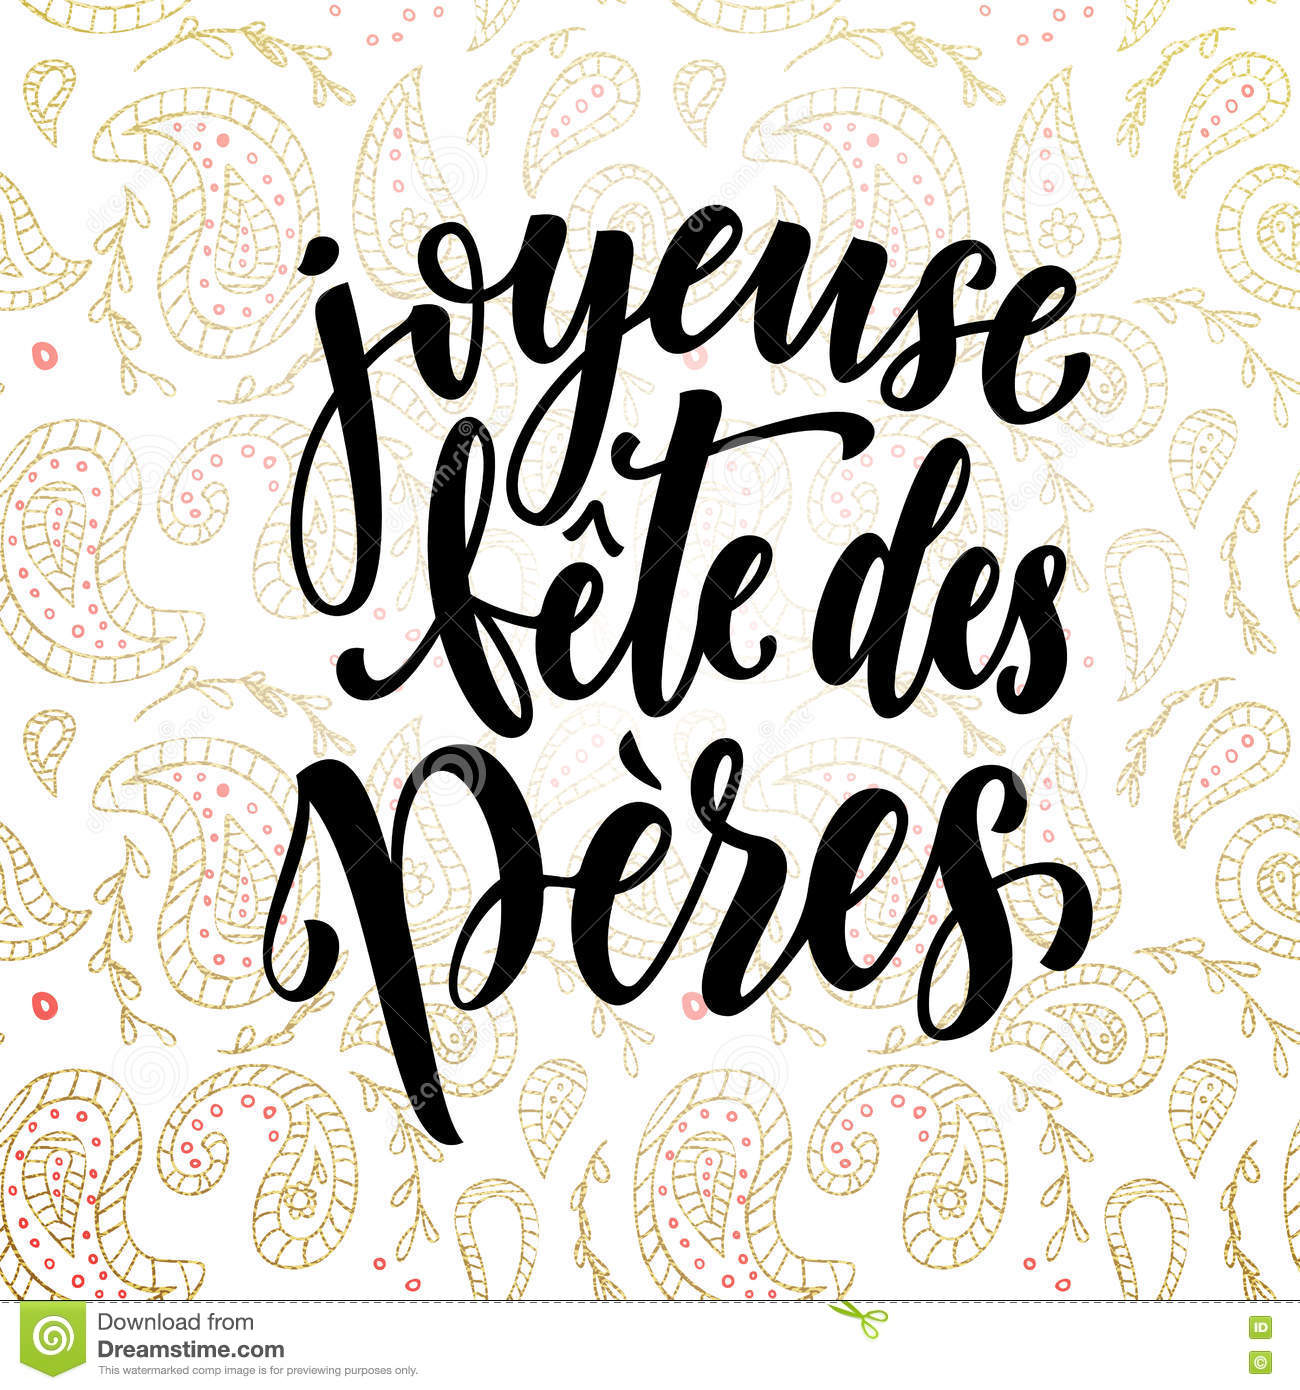 Joyeuse fete des peres father 39 s day french greeting card stock illustration image 72380715 - Photo fete des peres ...